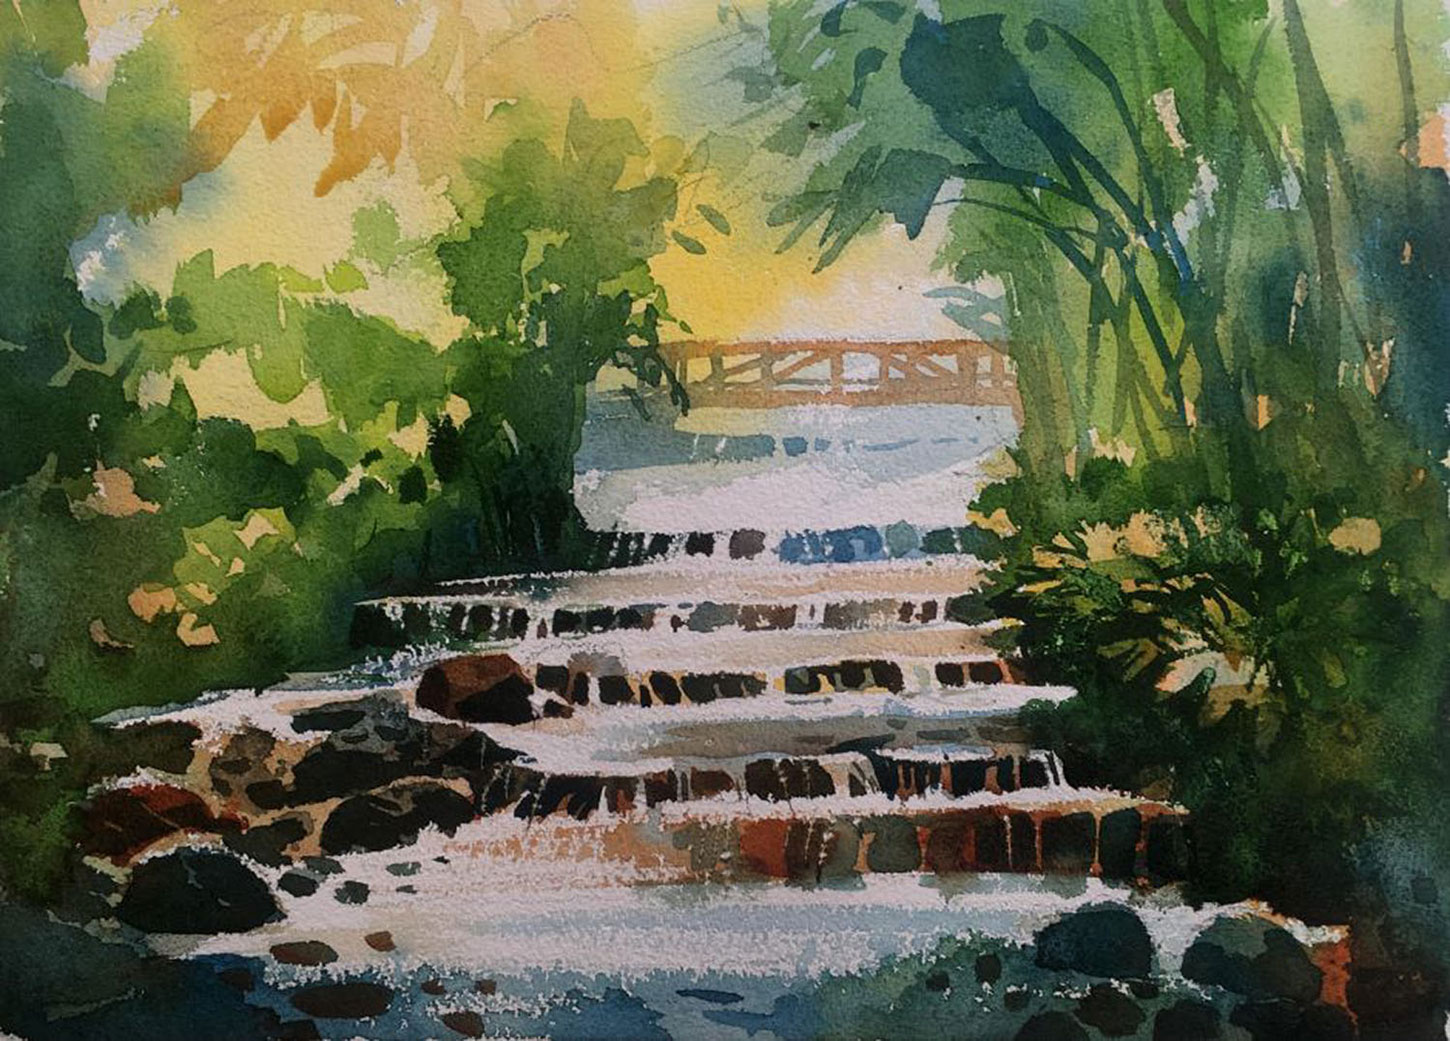 Painting the Natural World Online at Chicago Botanic Garden